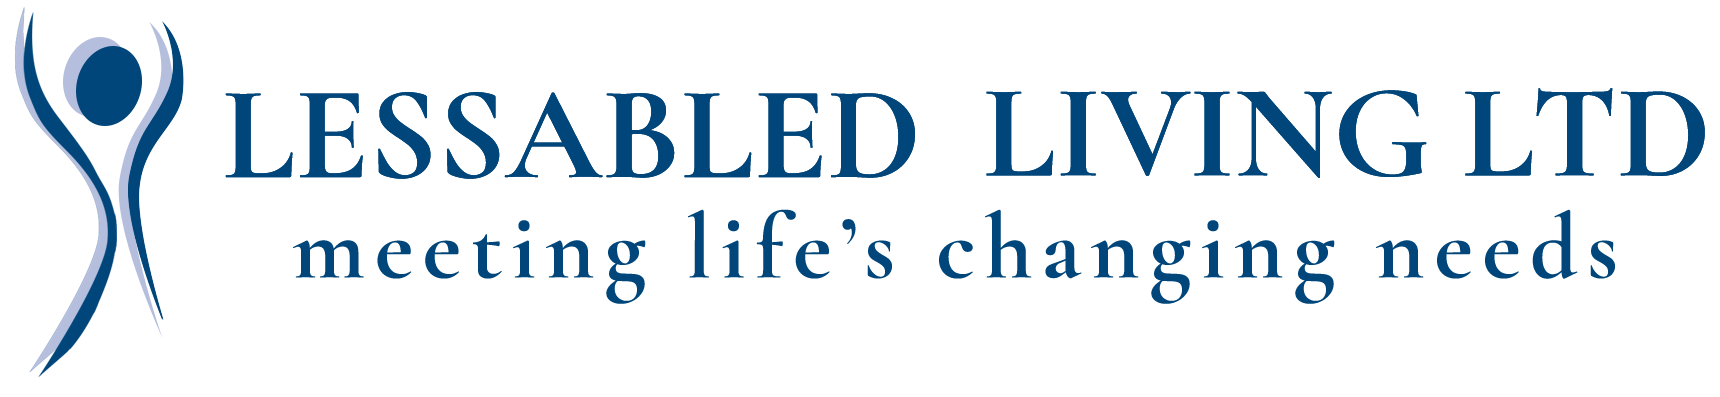 Lessabled Living Ltd logo